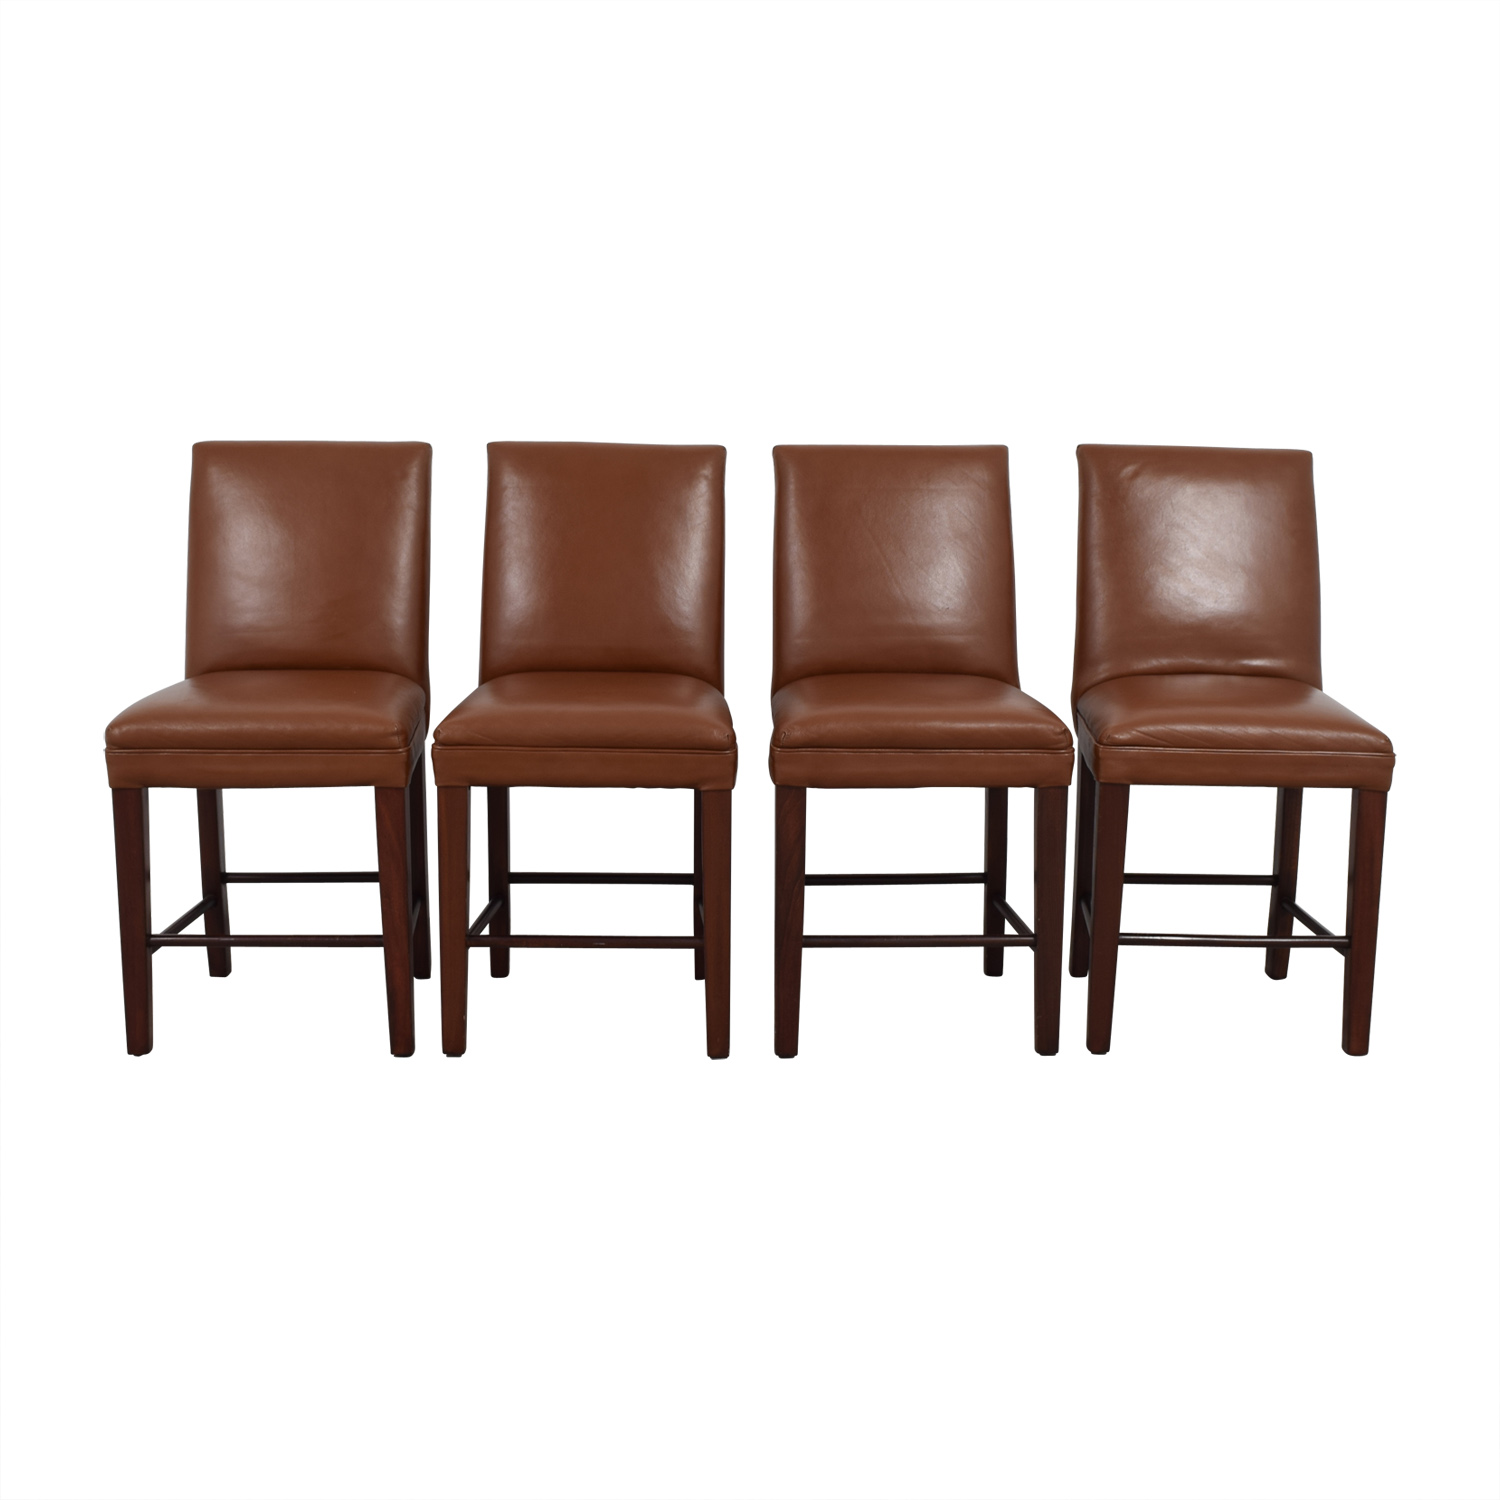 Cognac Leather Dining Chairs sale